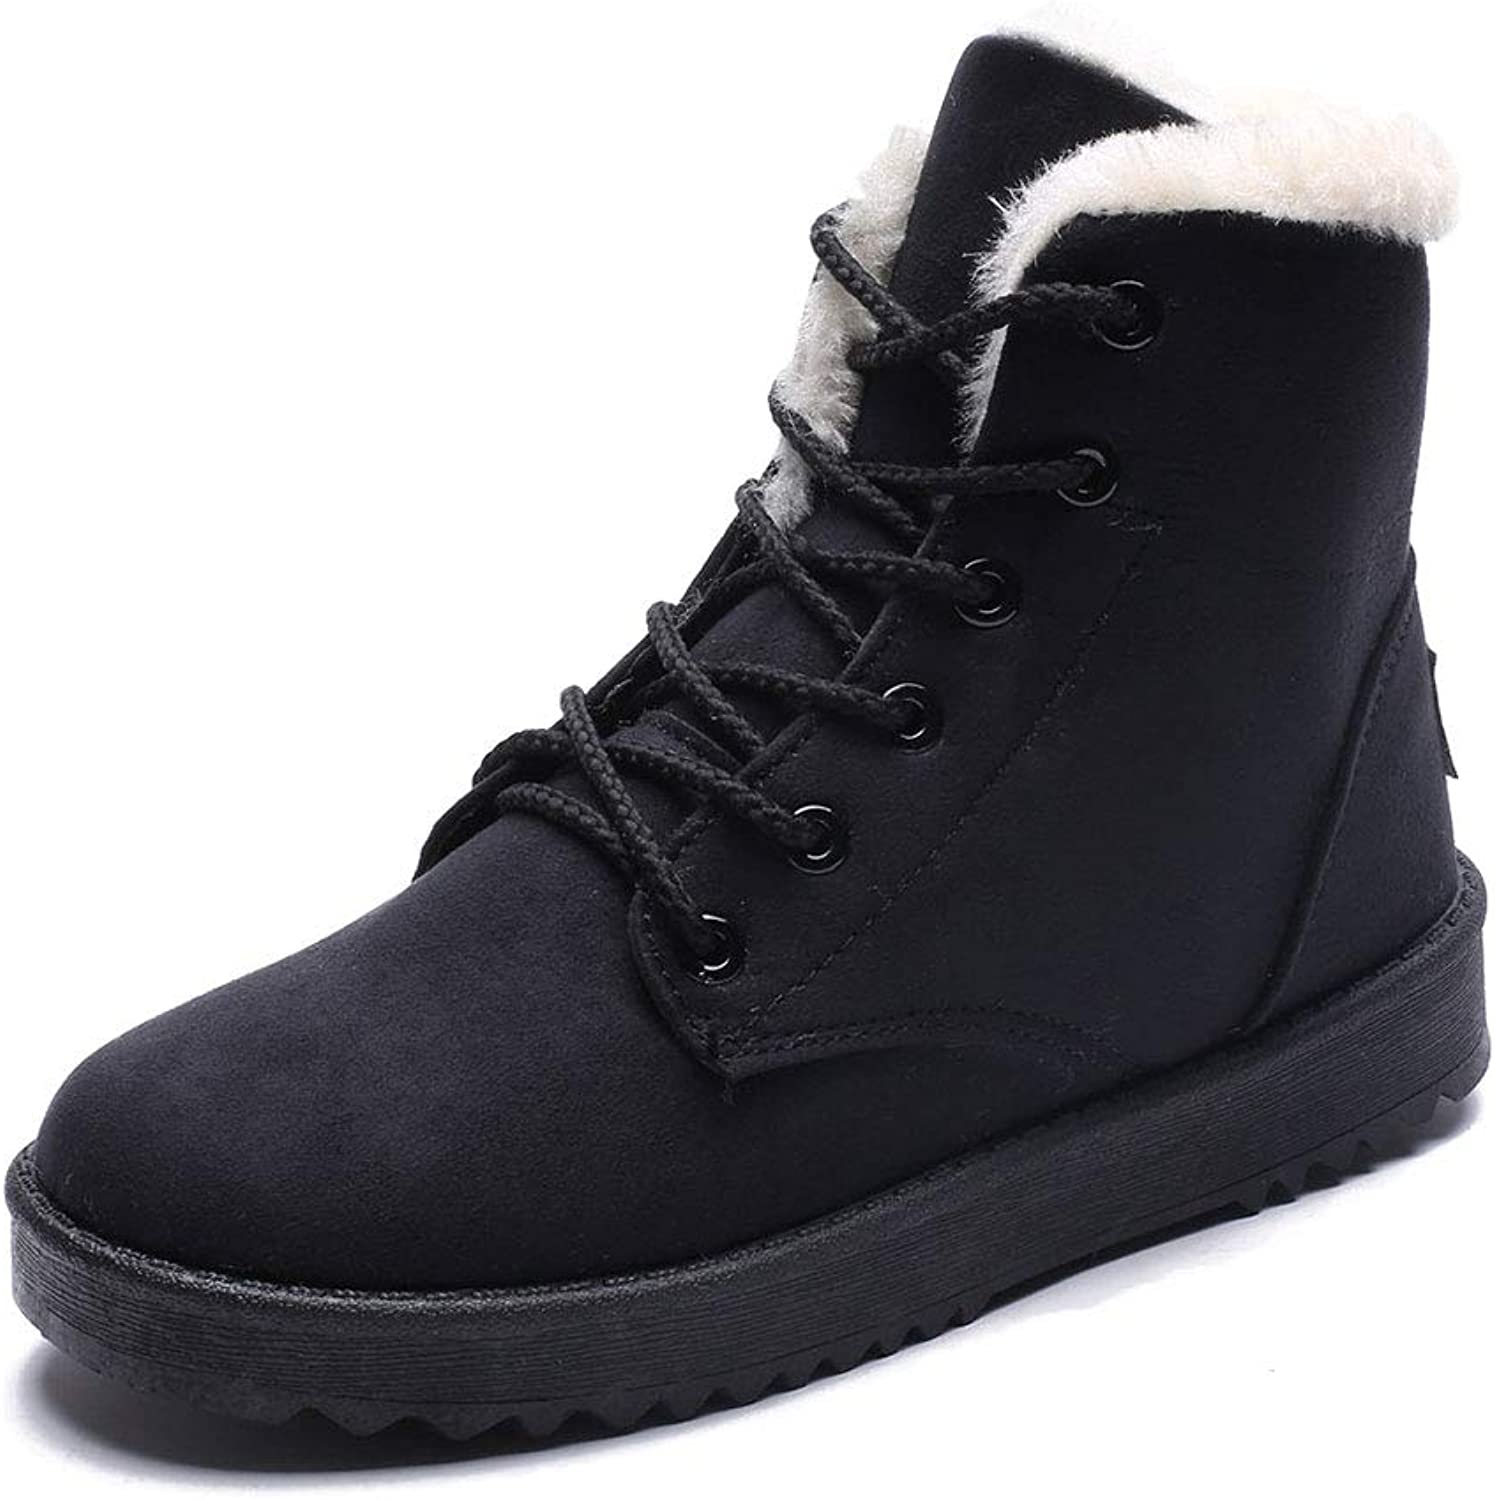 Women's Winter Boots, Short Tube Plus Velvet Warm Snow Boots, Warm, wear-Resistant, Non-Slip, Fashion